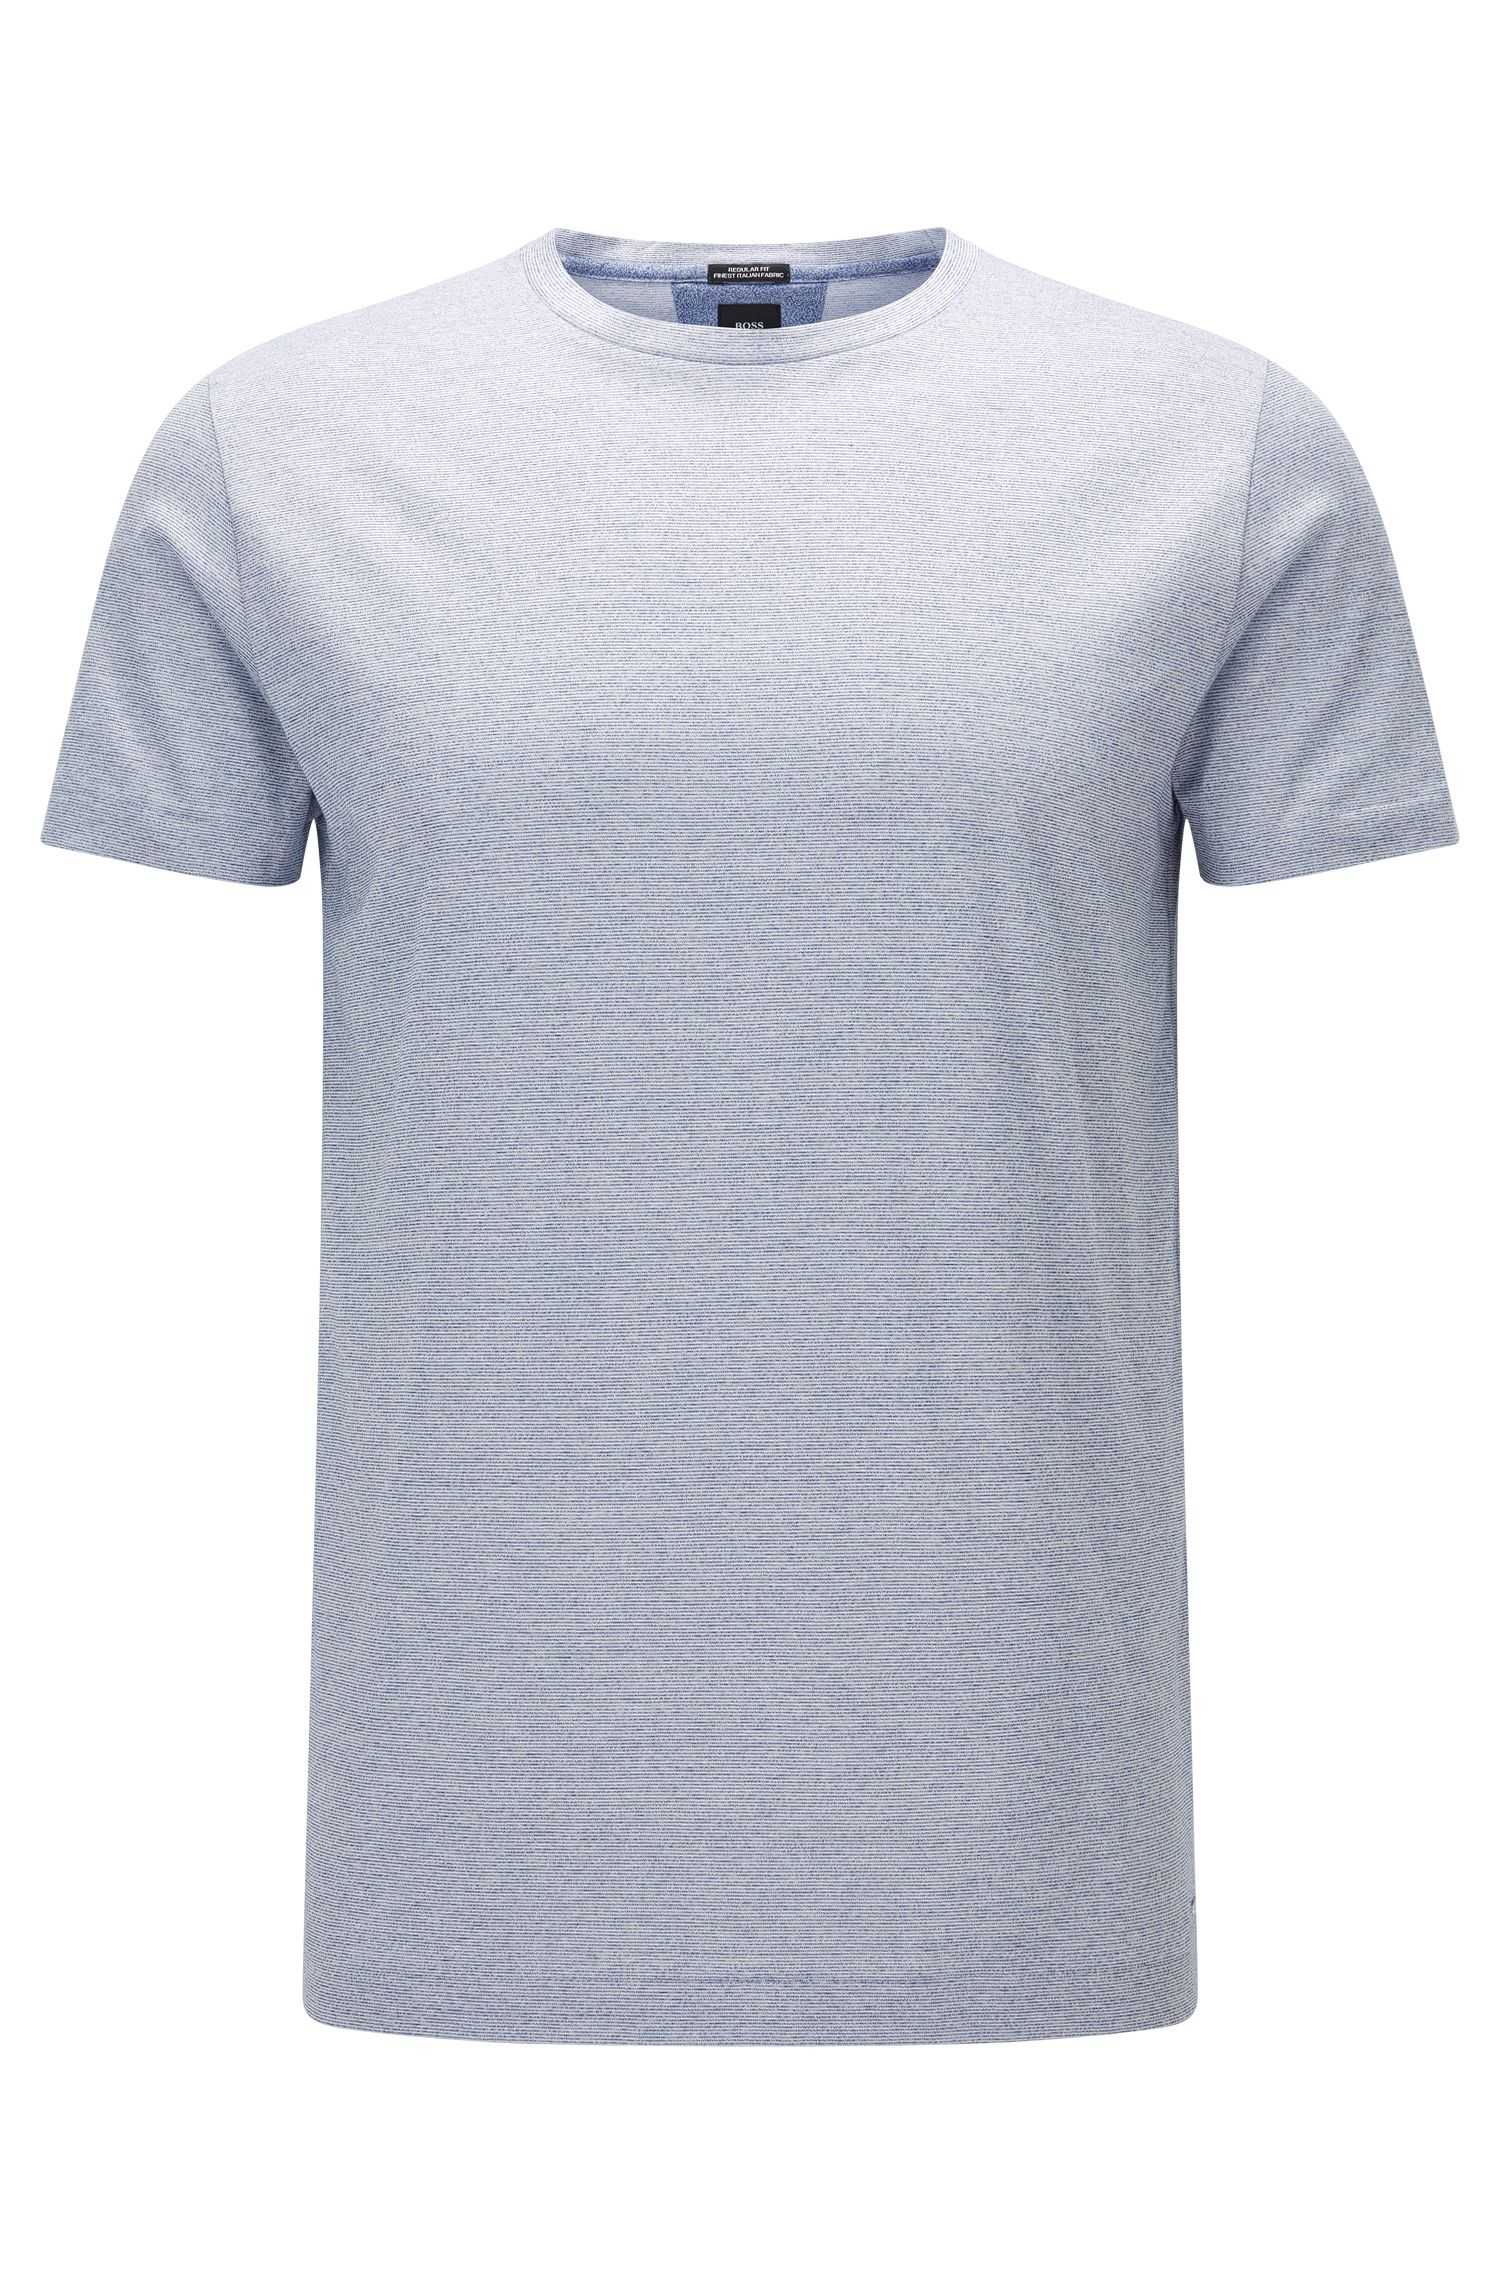 Regular-Fit T-Shirt aus Fil-à-Fil-Baumwolle